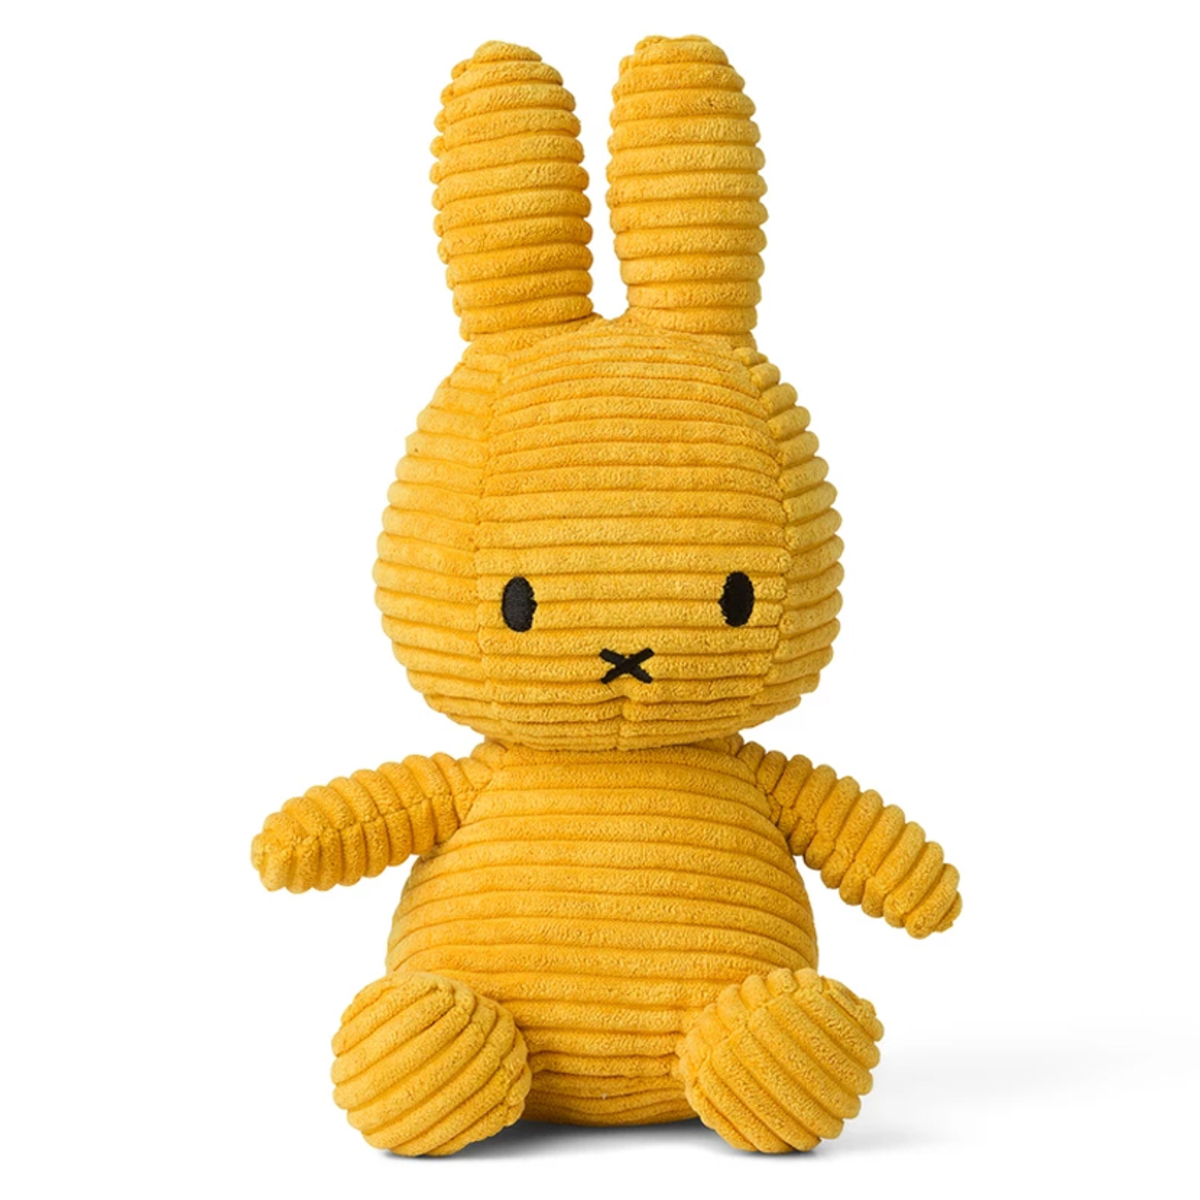 Peluche Lapin Miffy Moutarde - Petit Peluche Lapin Miffy Moutarde 24 cm